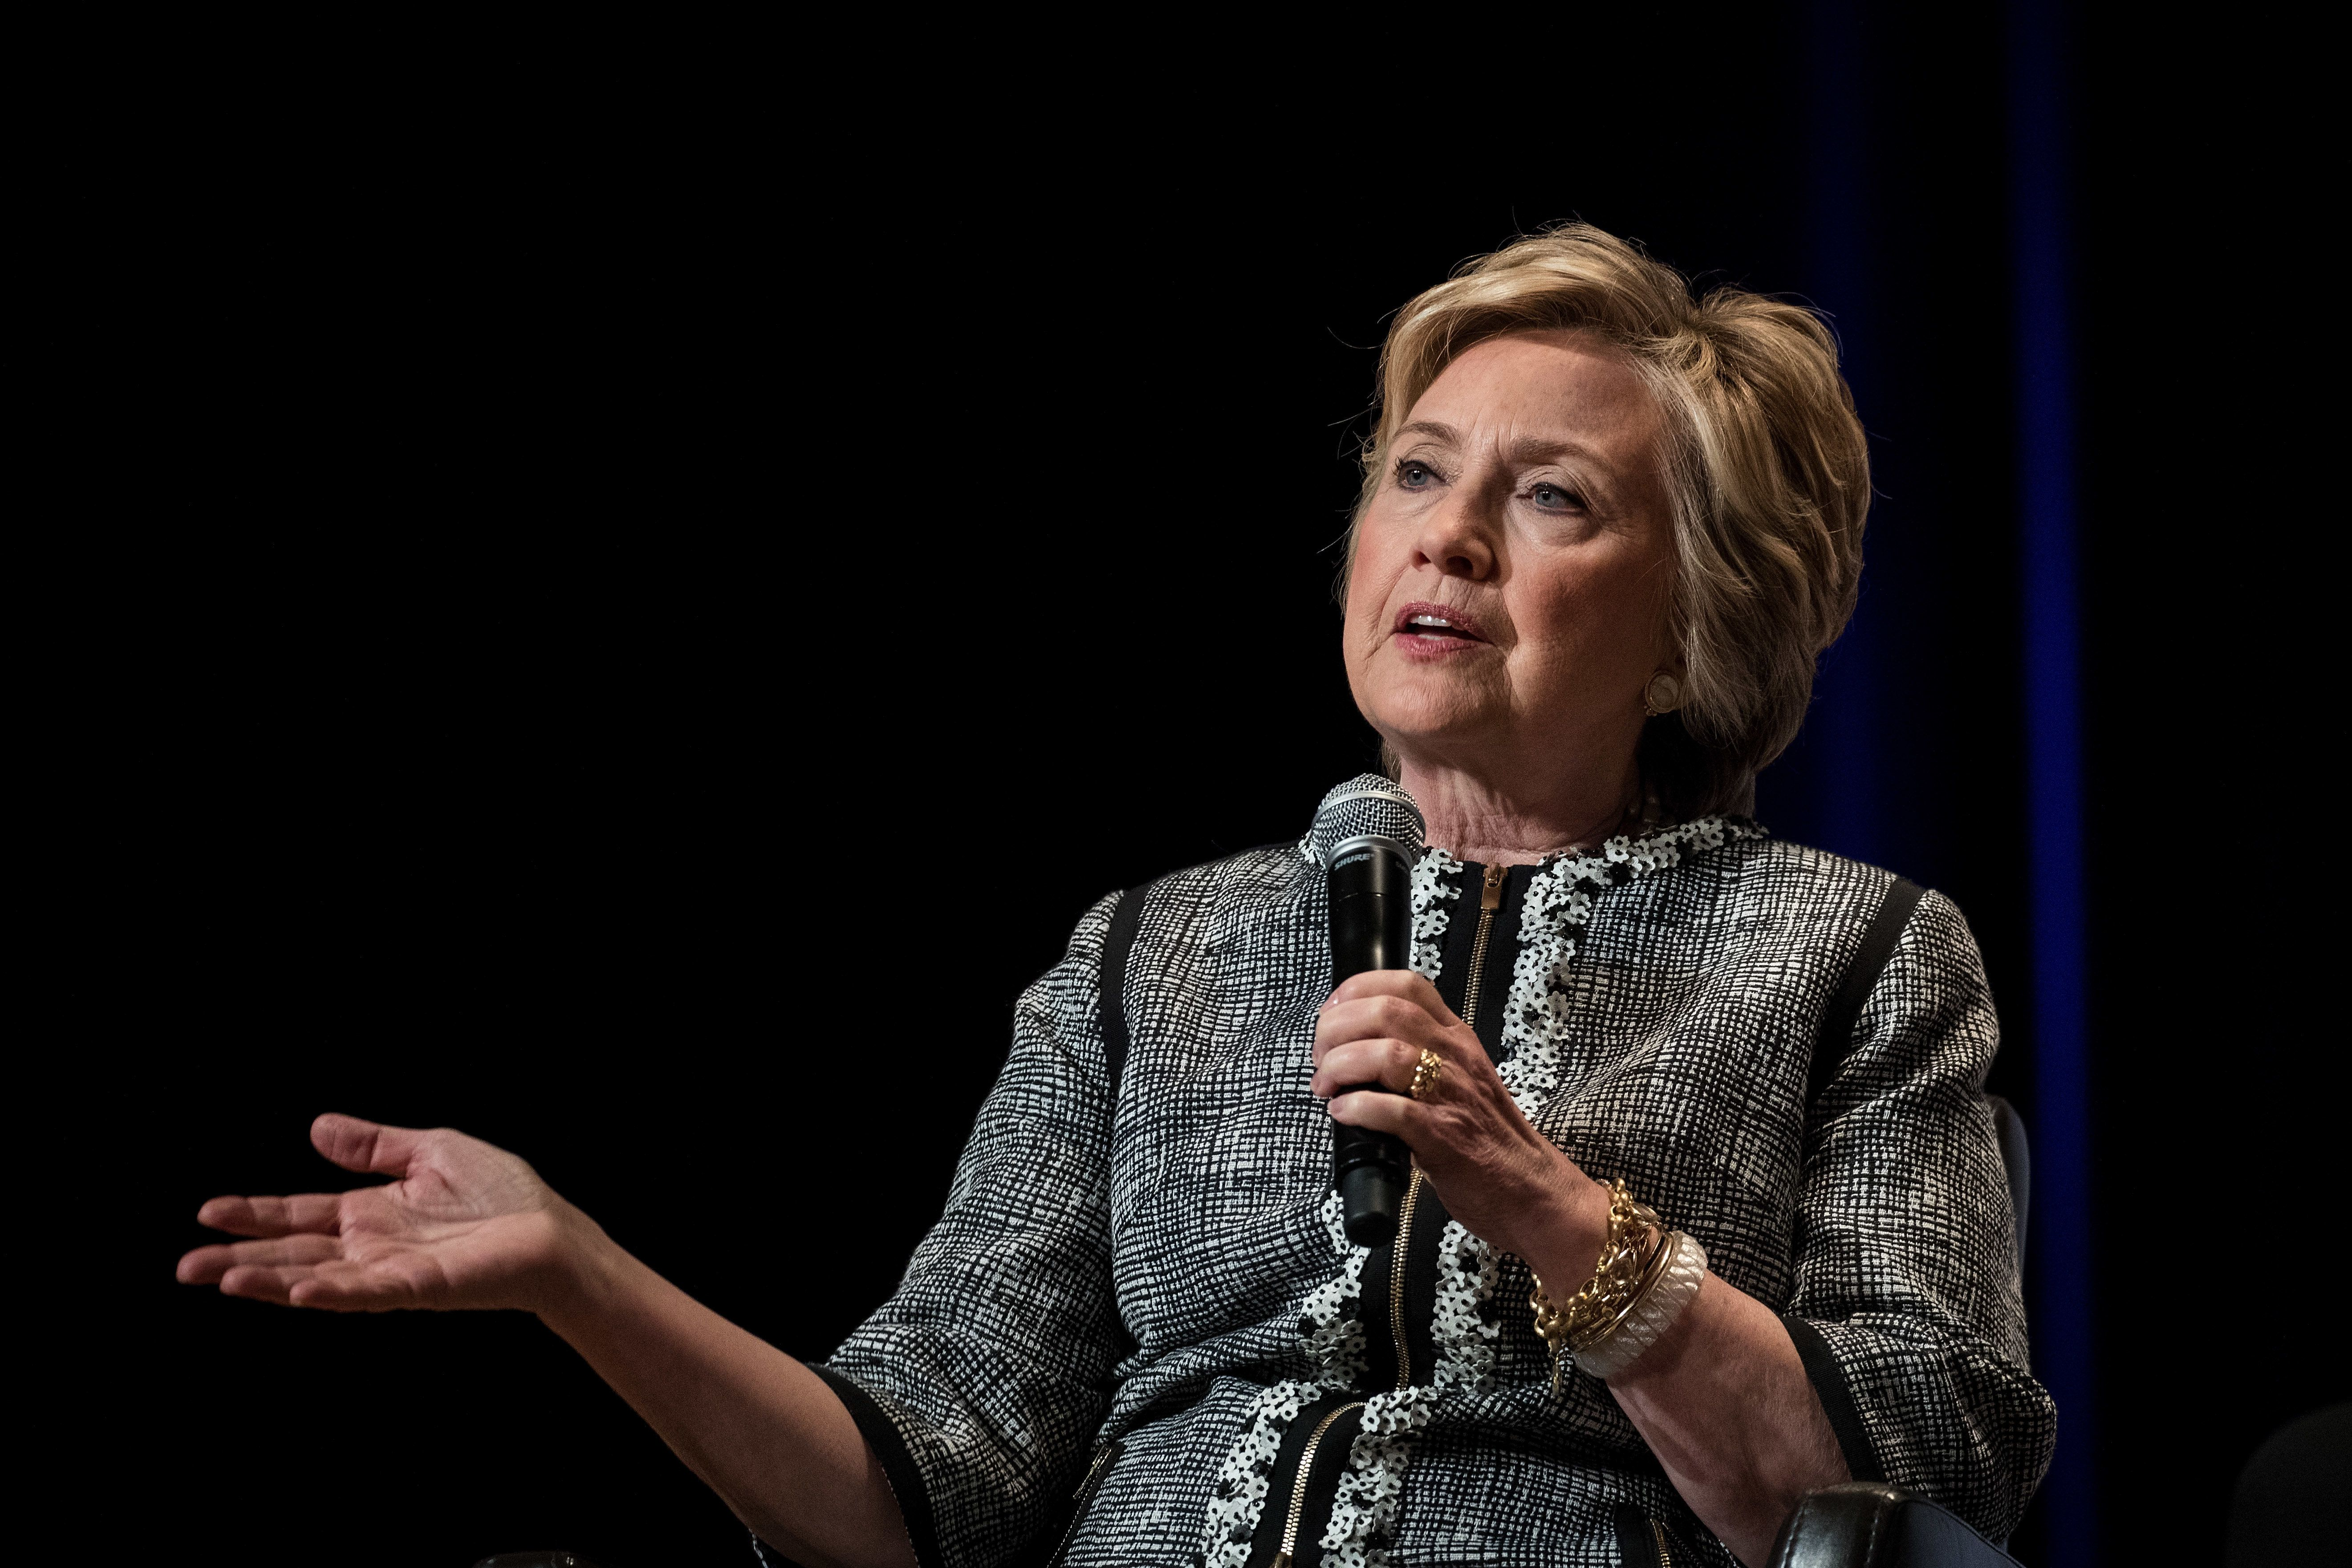 Hillary Clinton's campaign team was frustrated the press wouldn't focus on potential Russian meddling in the election until a